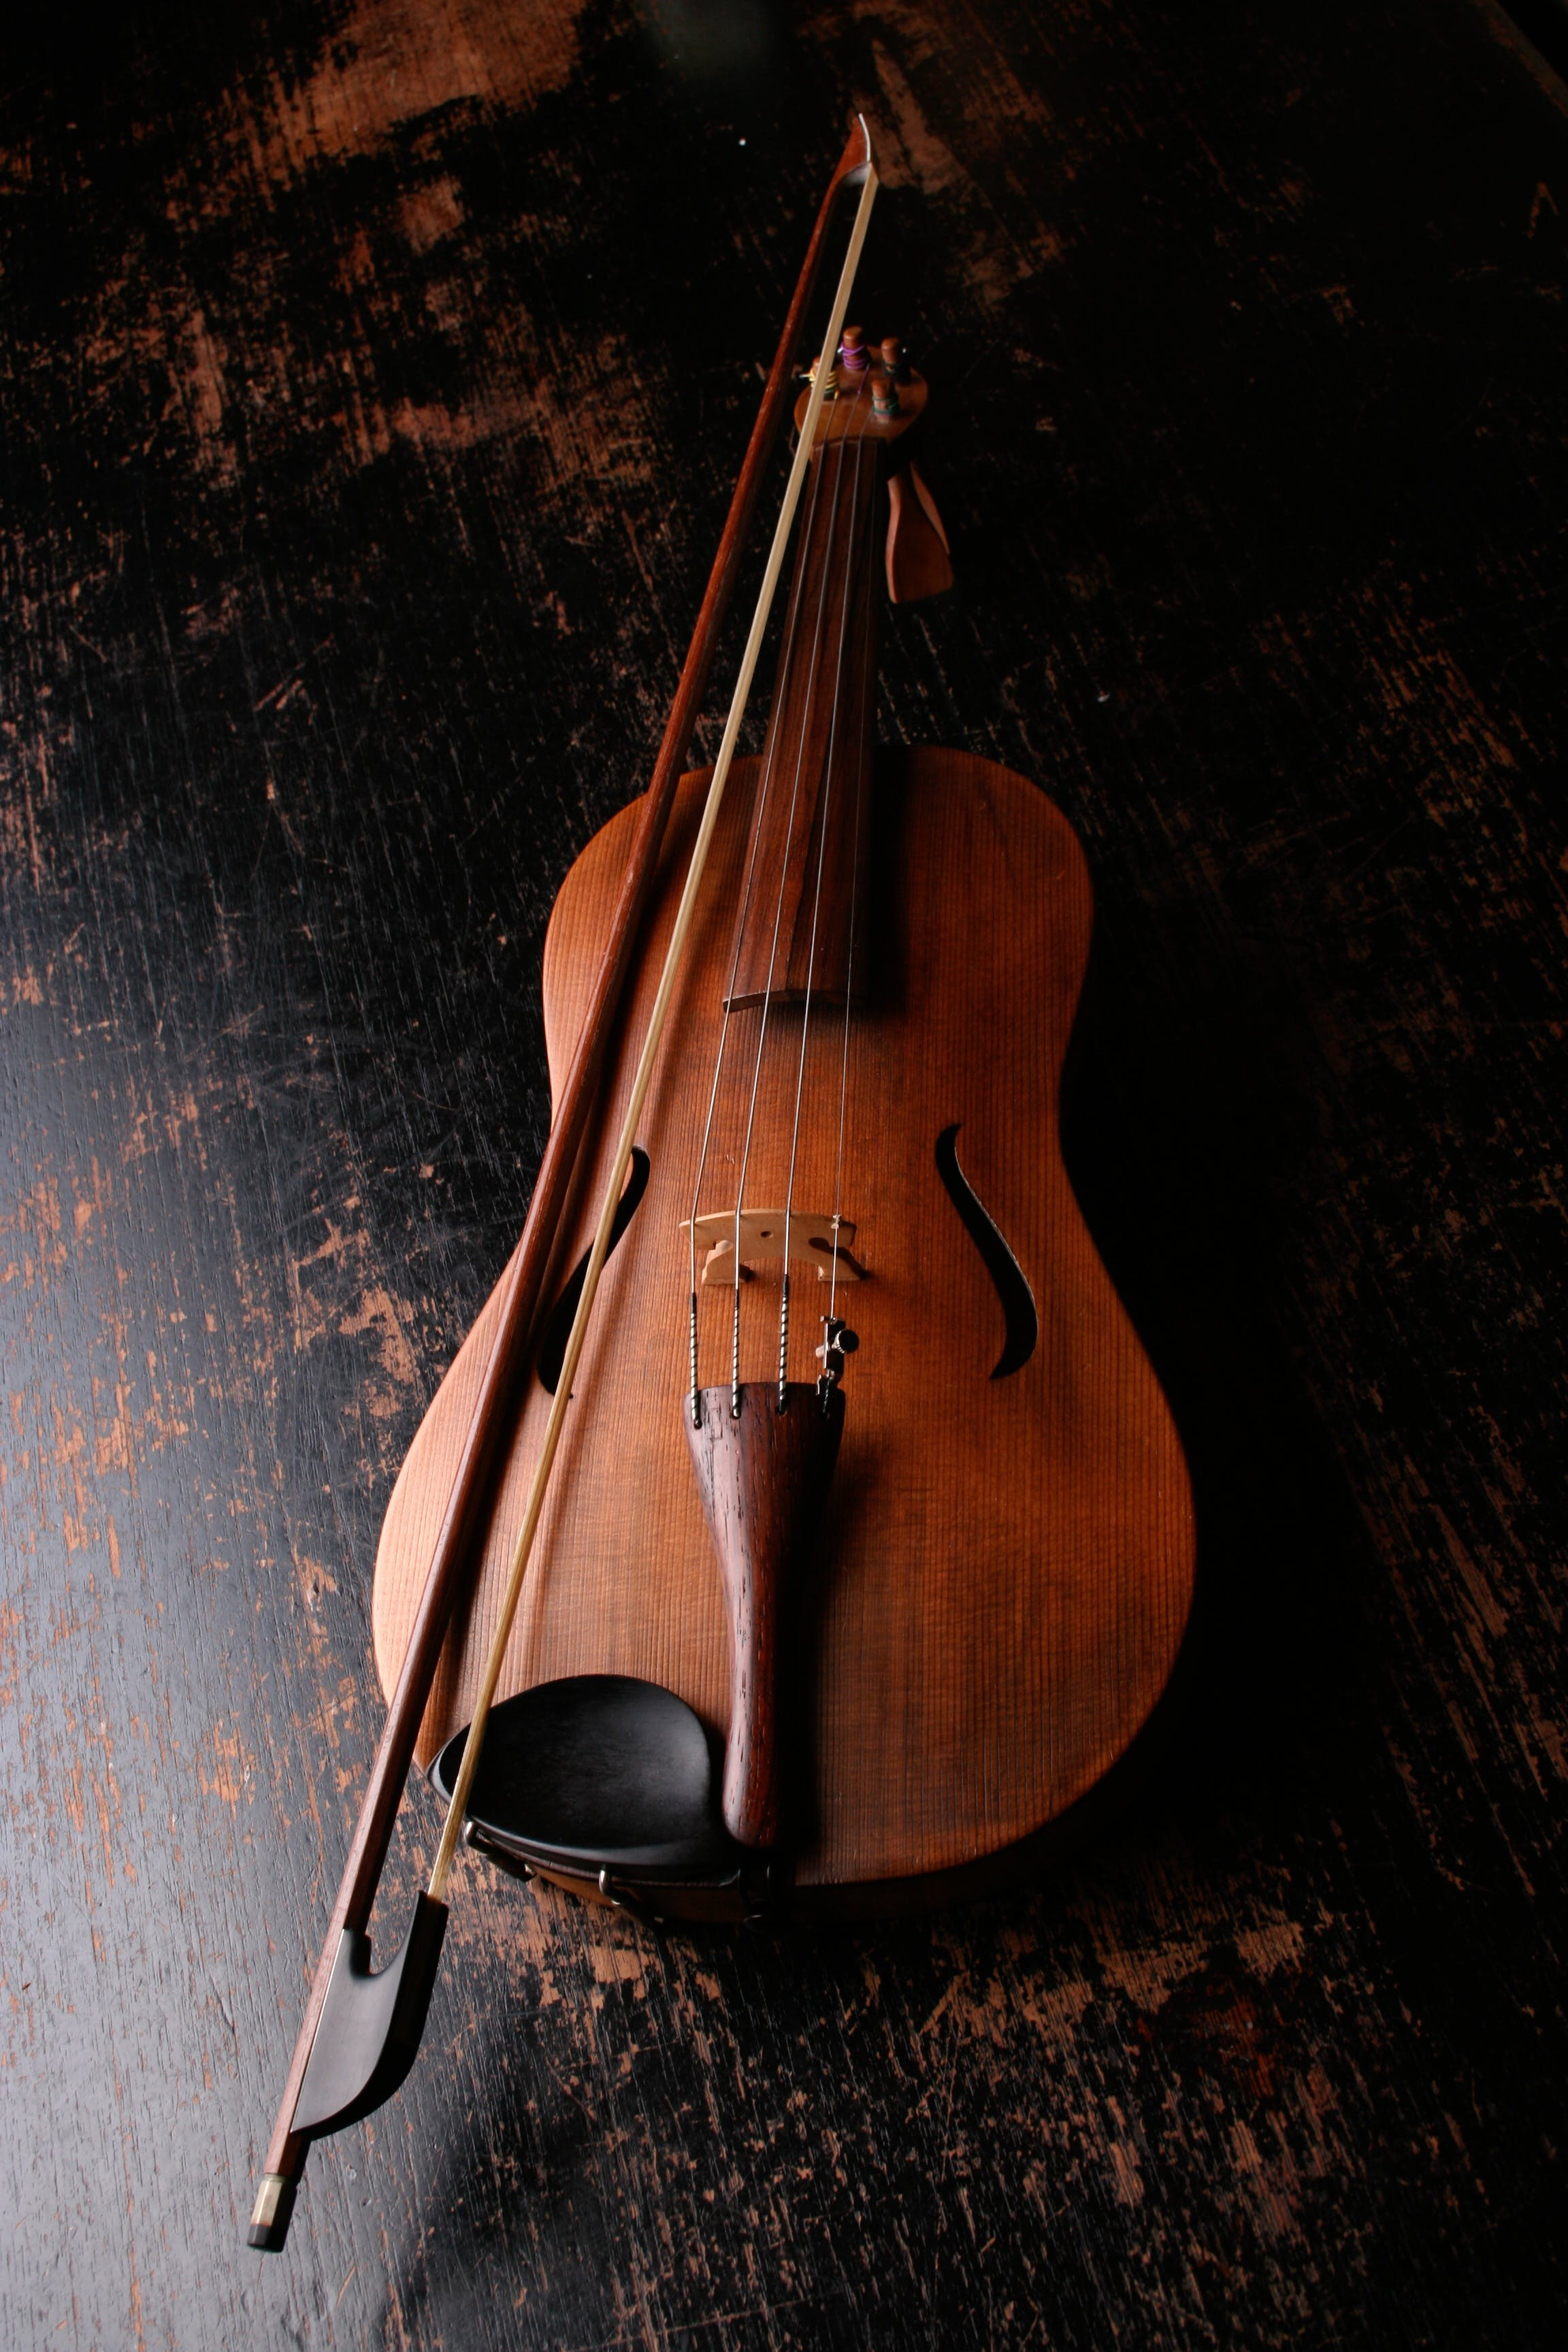 Brown Wooden Violin and Violin Bow